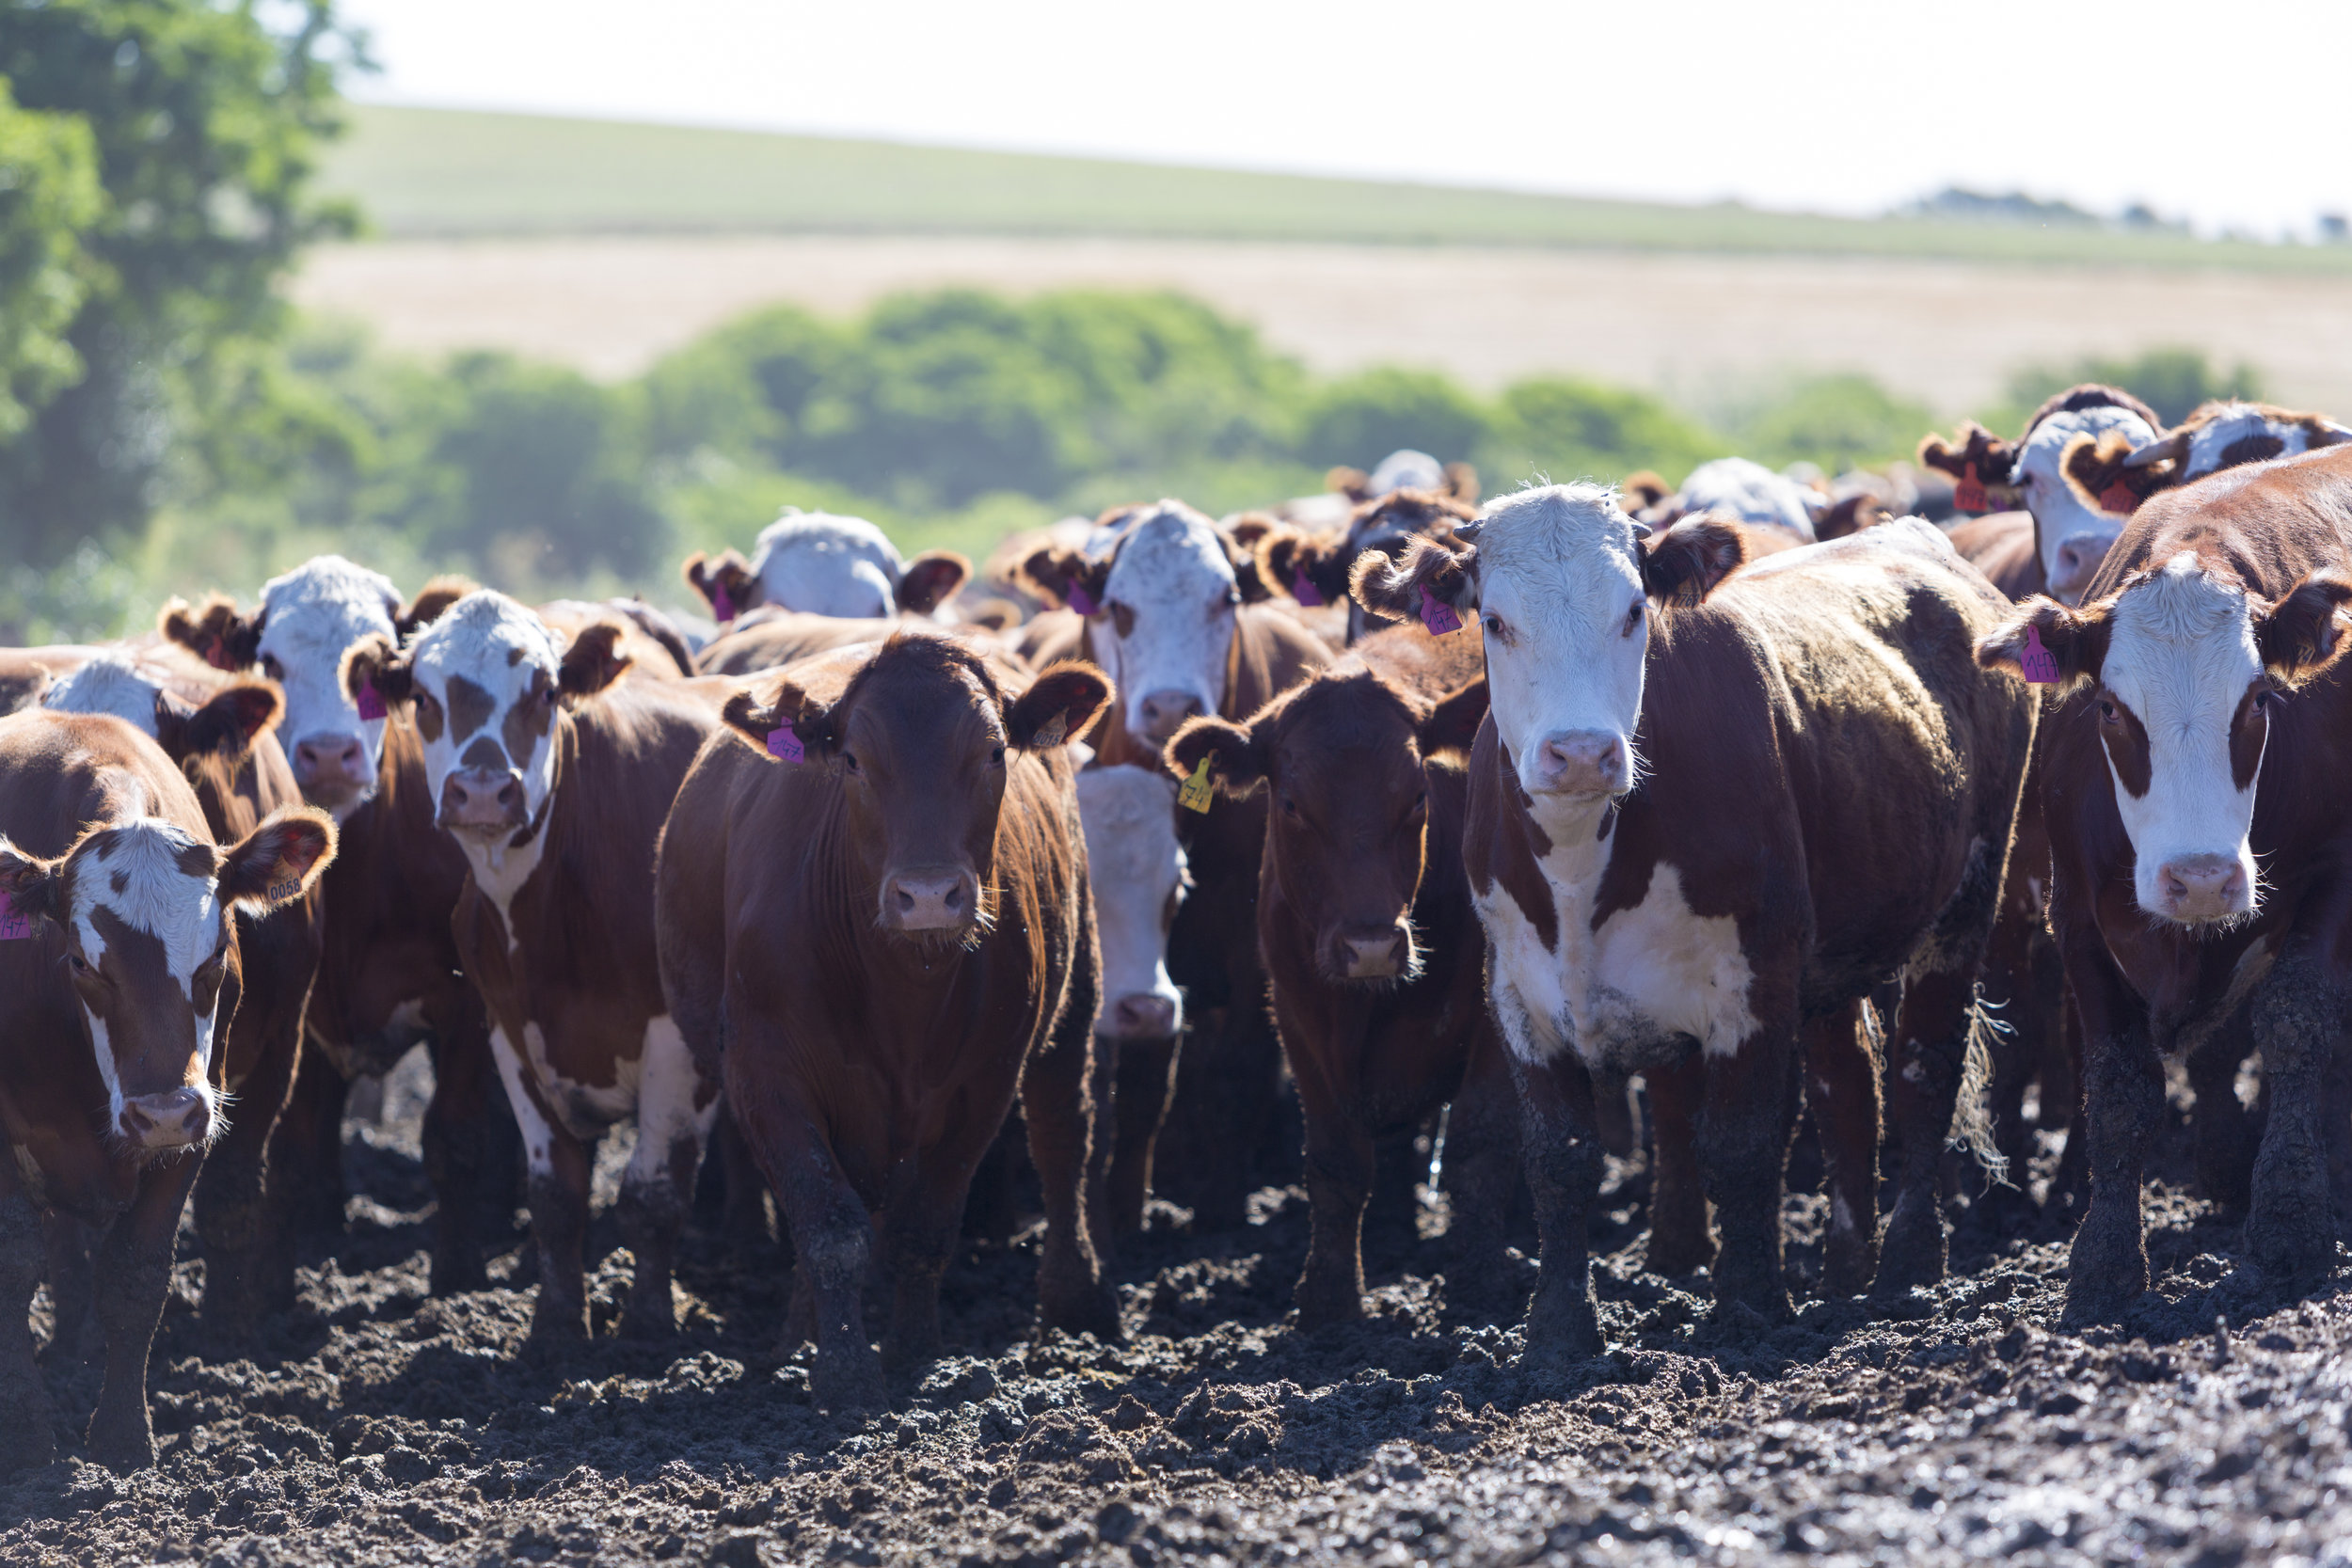 group-of-cows-in-intensive-livestock-farm-land-PG4SMWM.jpg